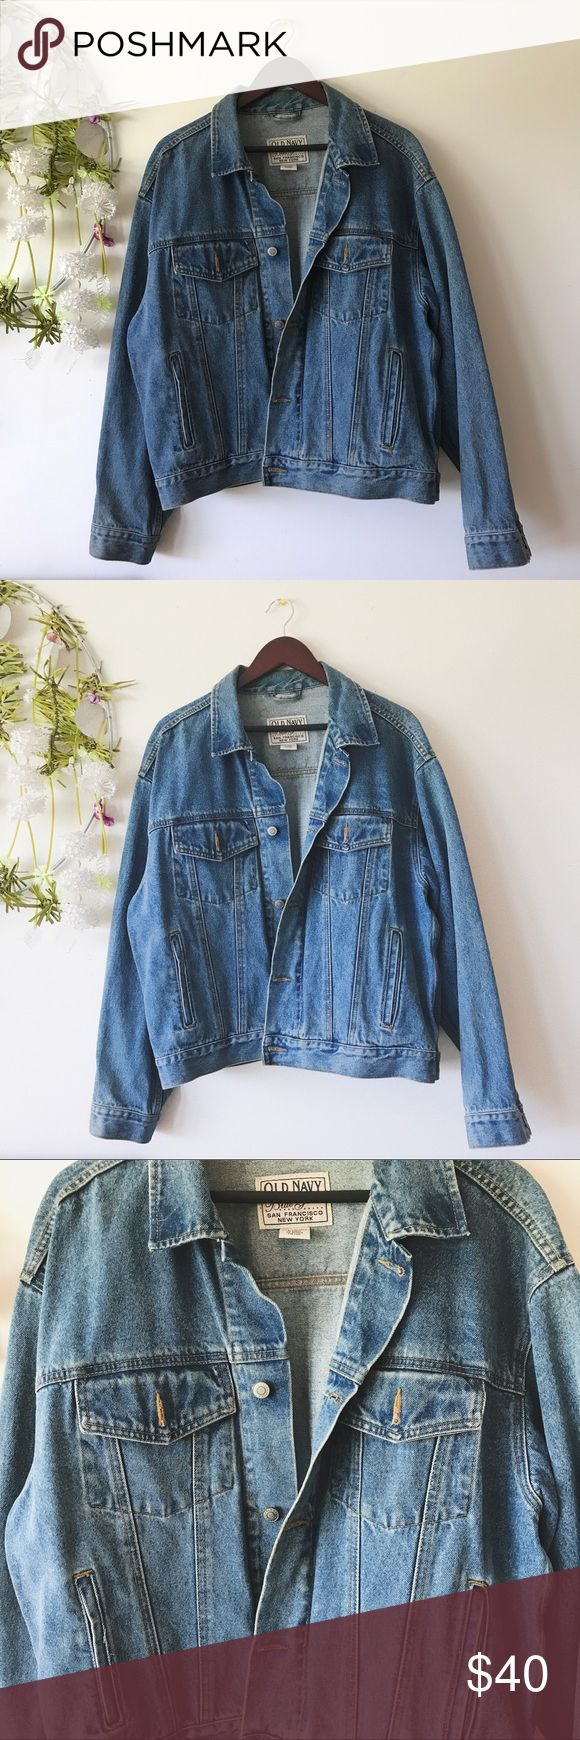 • Vintage Old Navy Jean Jacket • Very classic looking jean jacket. No signs of wear. Could fit oversized for women's Large Old Navy Jackets & Coats